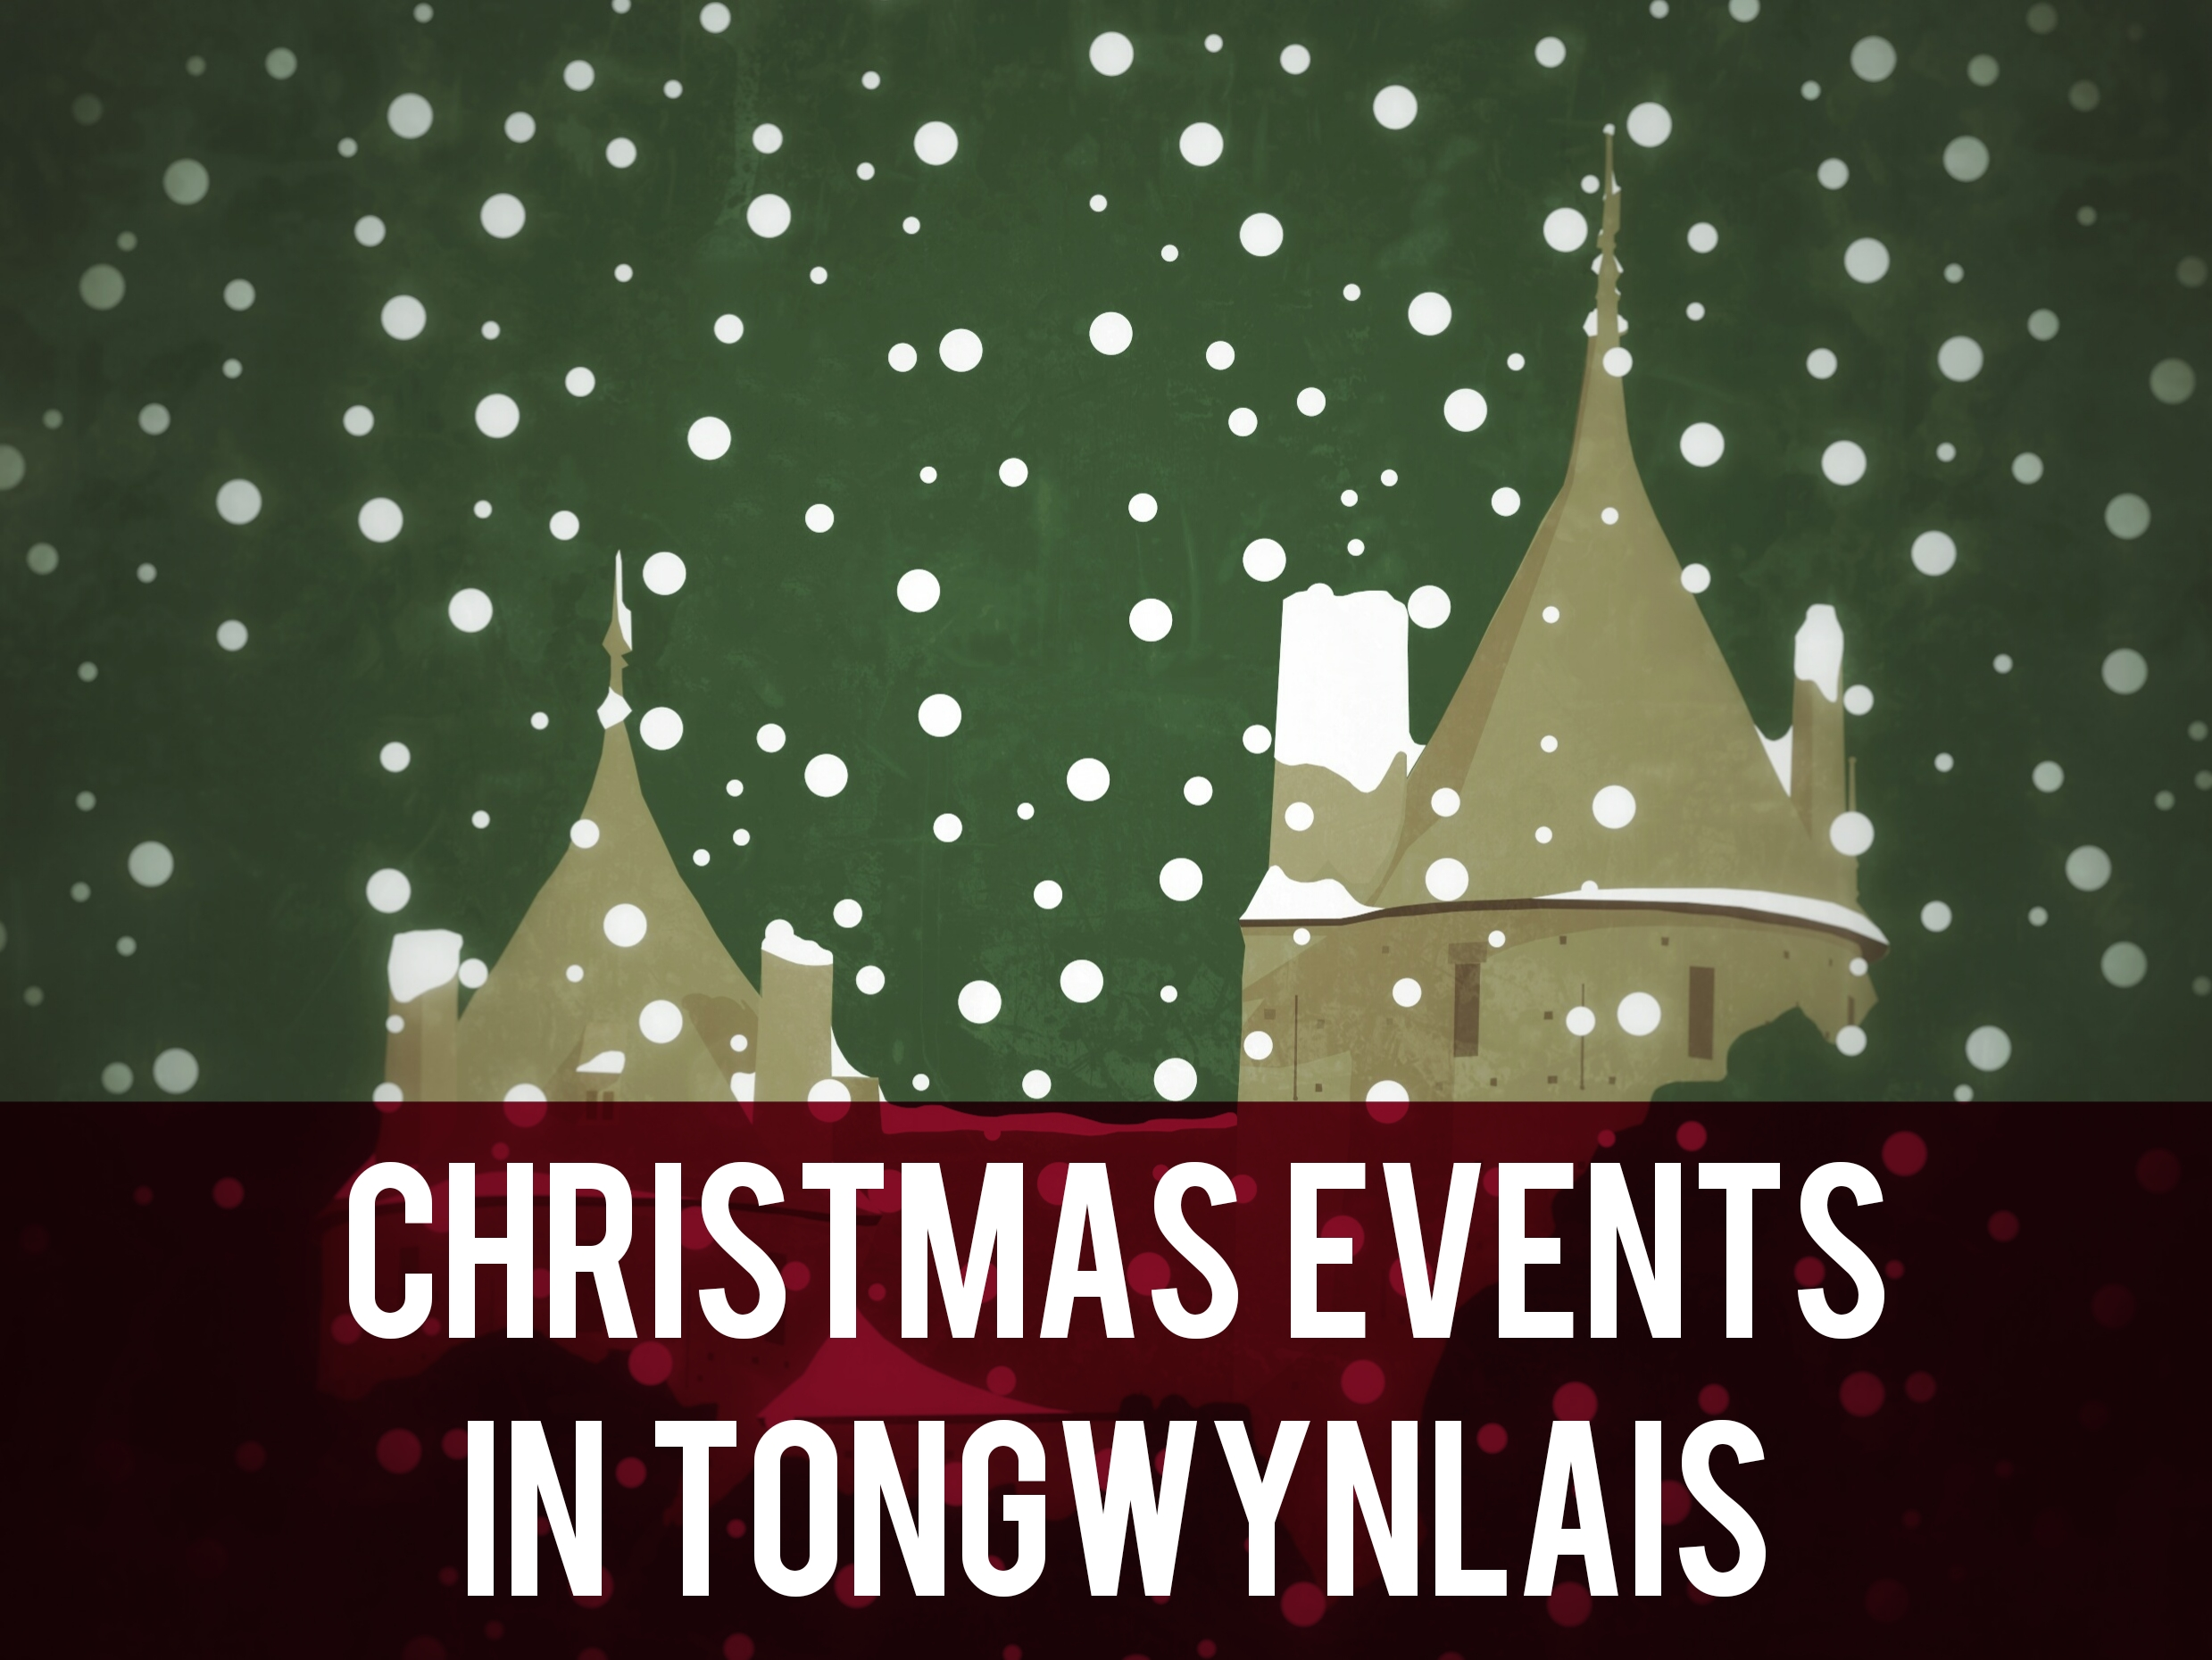 Christmas Events in Tongwynlais